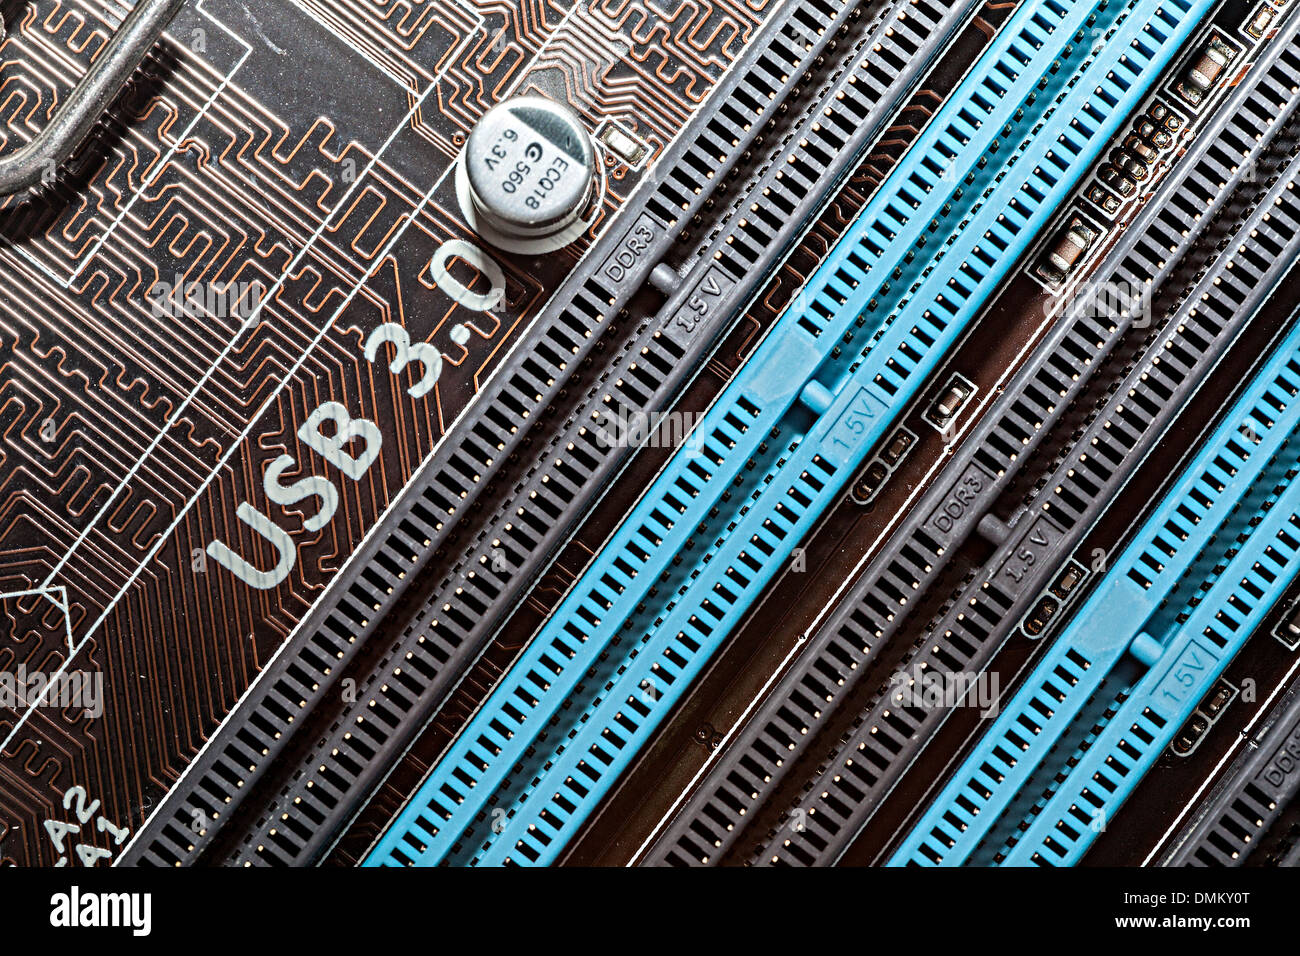 Computer motherboard with USB 3.0 written near slots for memory chips - Stock Image